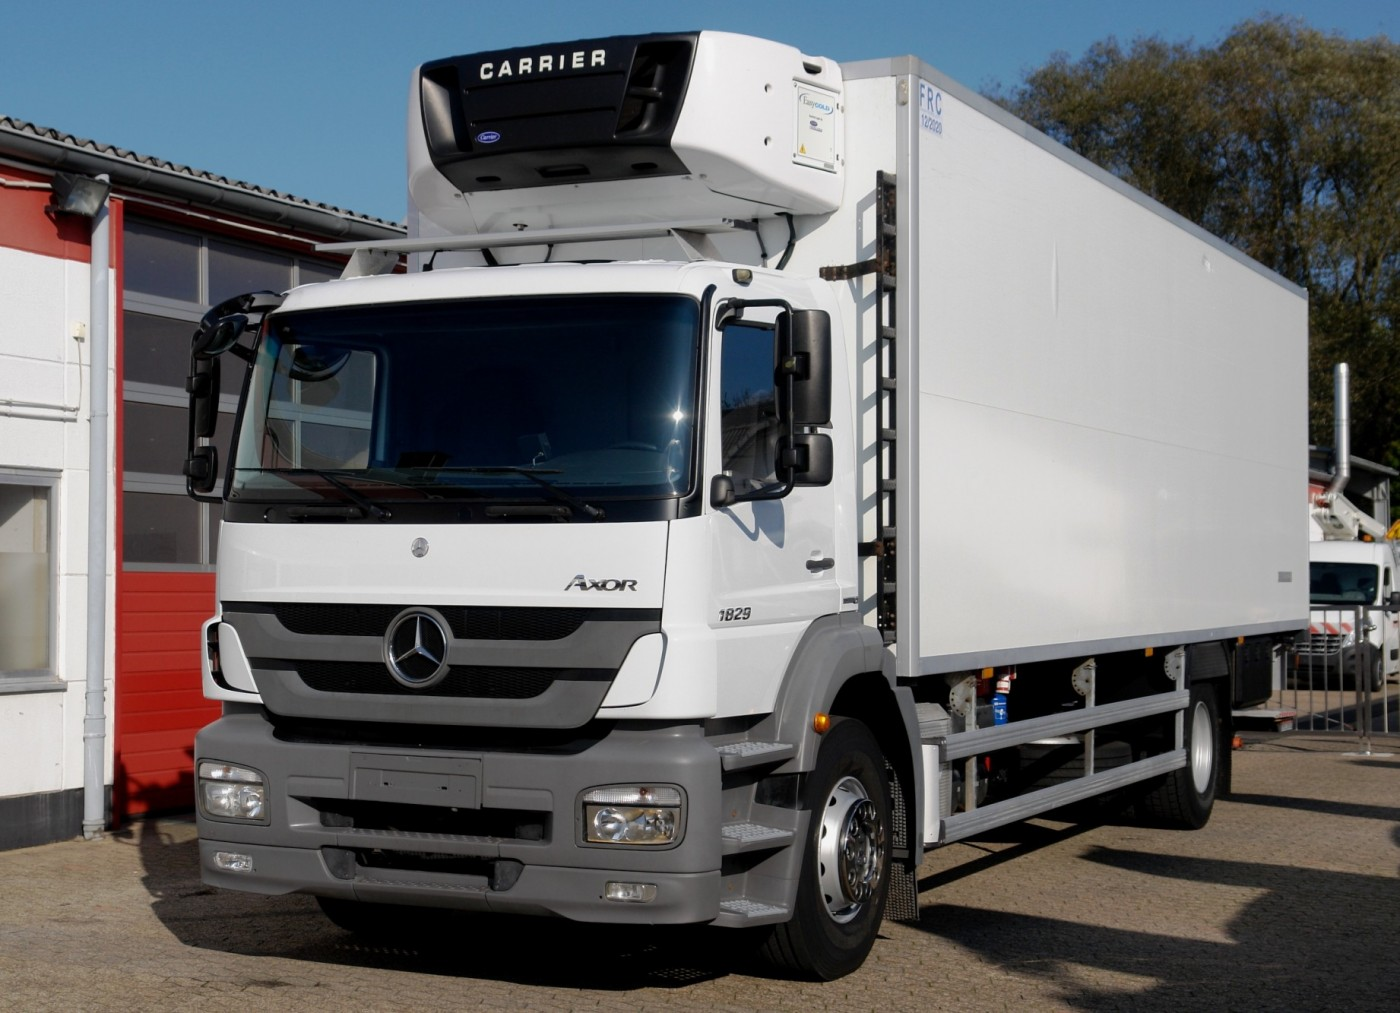 Mercedes-Benz - Axor 1829 NL Camion frigorific 8,70m Carrier Supra 950 Lift hidraulic 1500kg aer conditionat EURO5